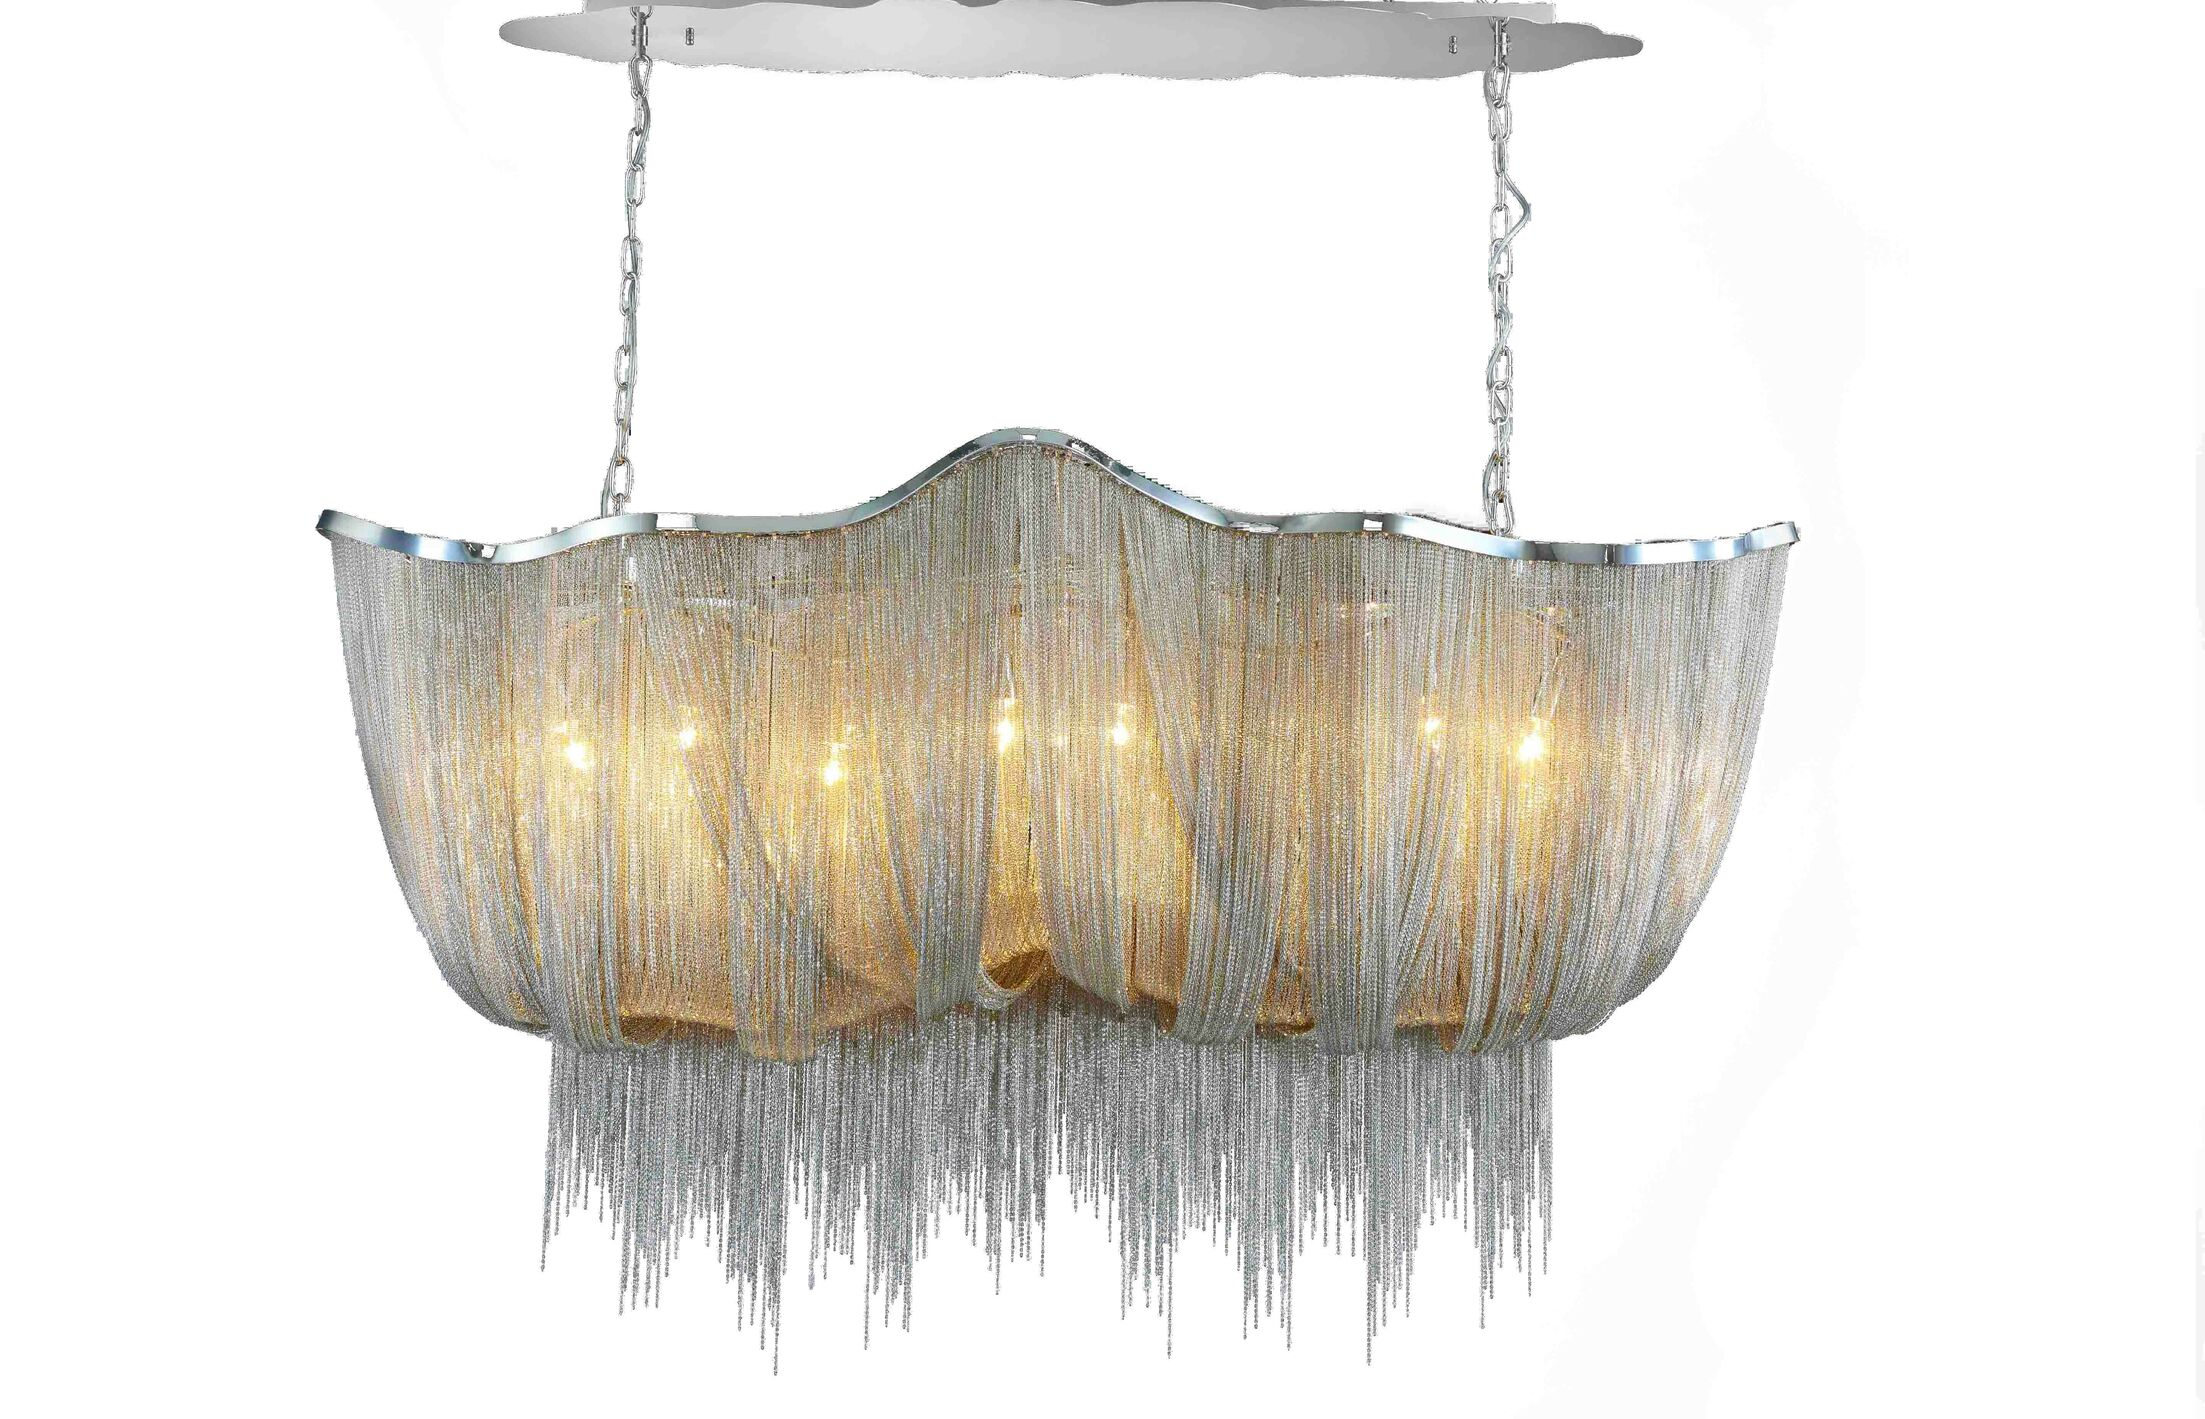 Loar 8-Light Kitchen Island Pendant